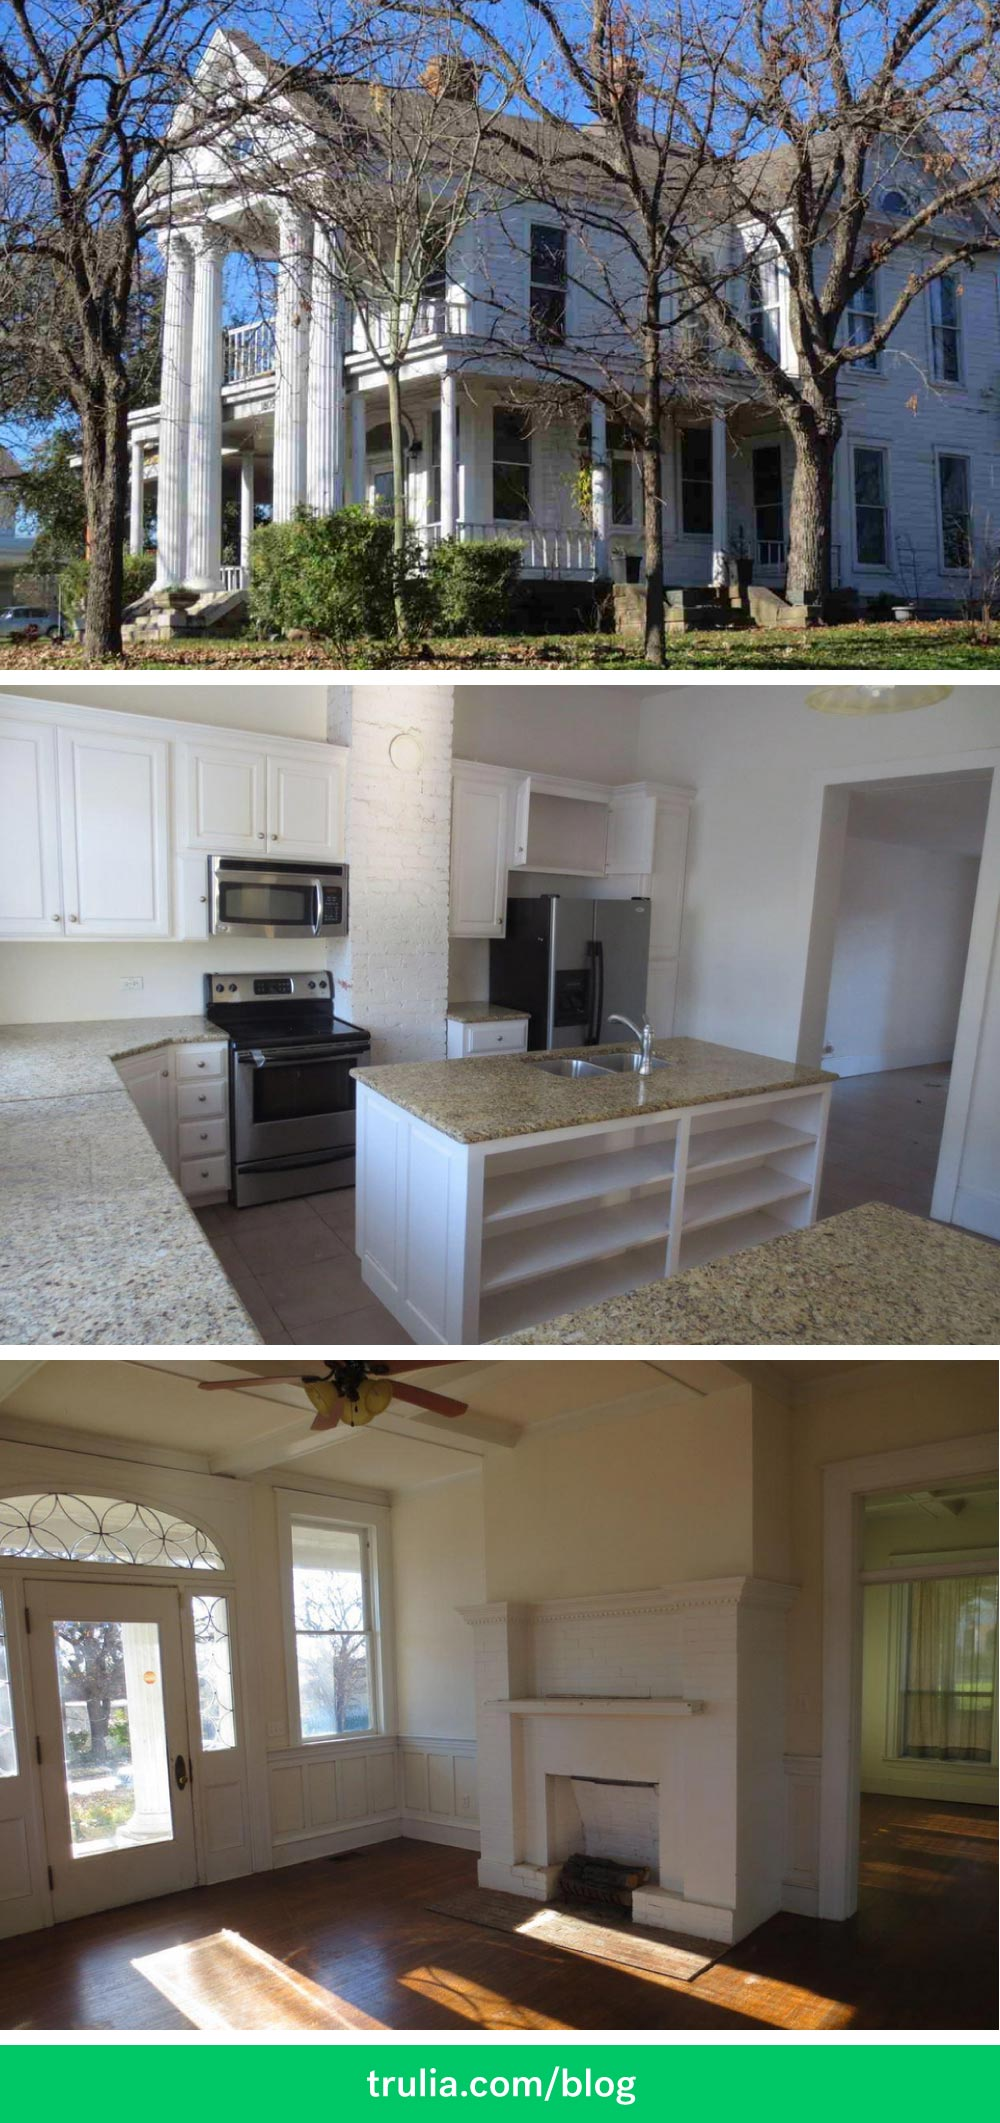 Home for sale in Waco TX